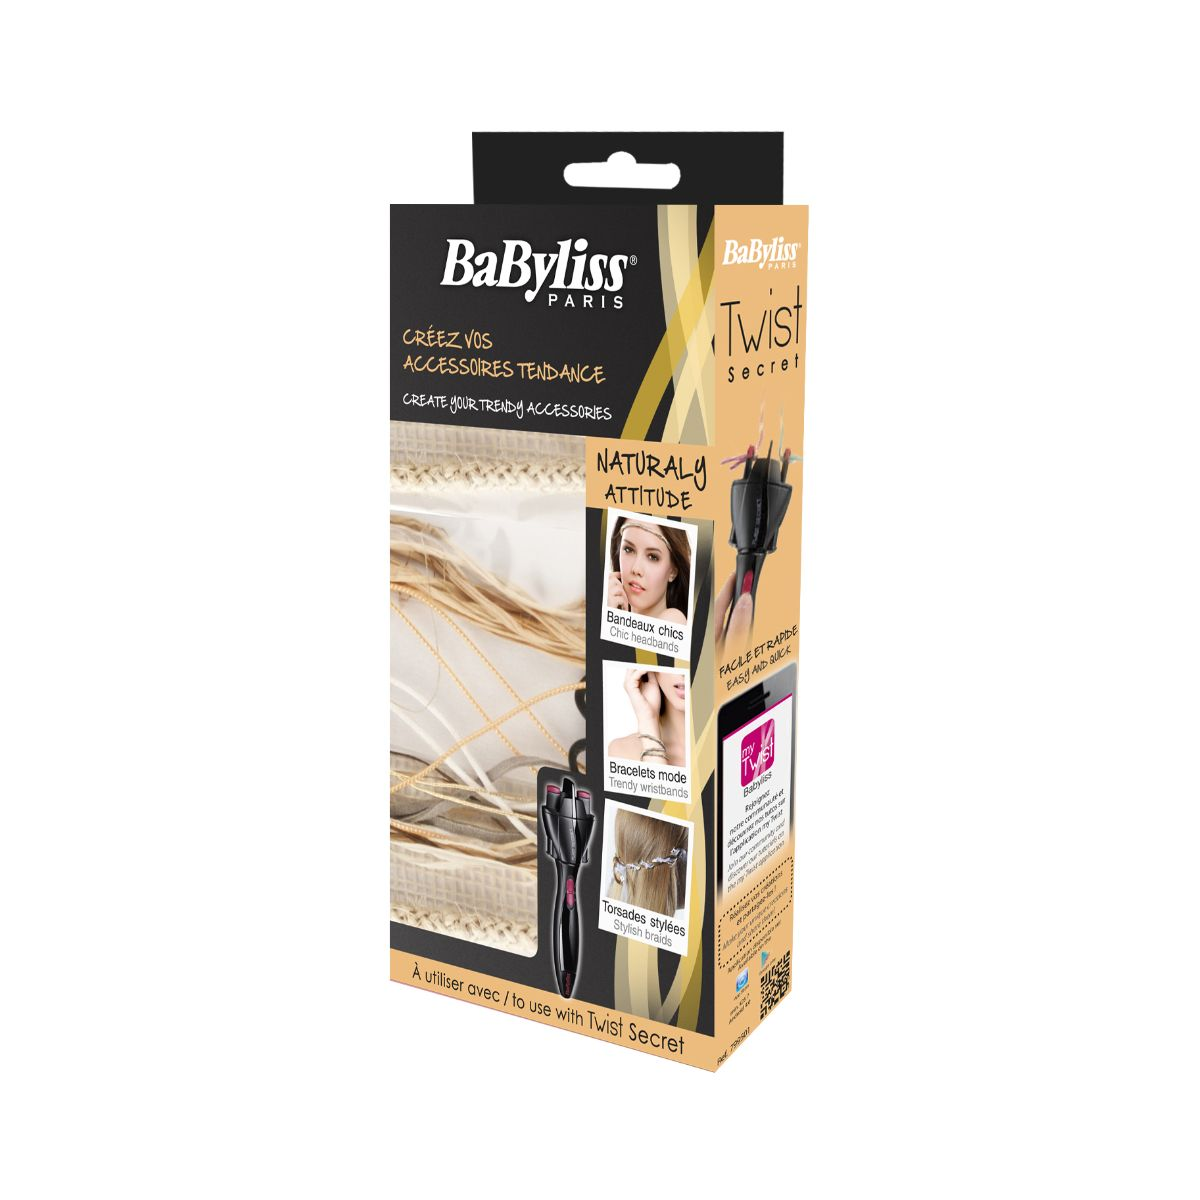 BABYLISS Kit accessoires Twist Naturaly